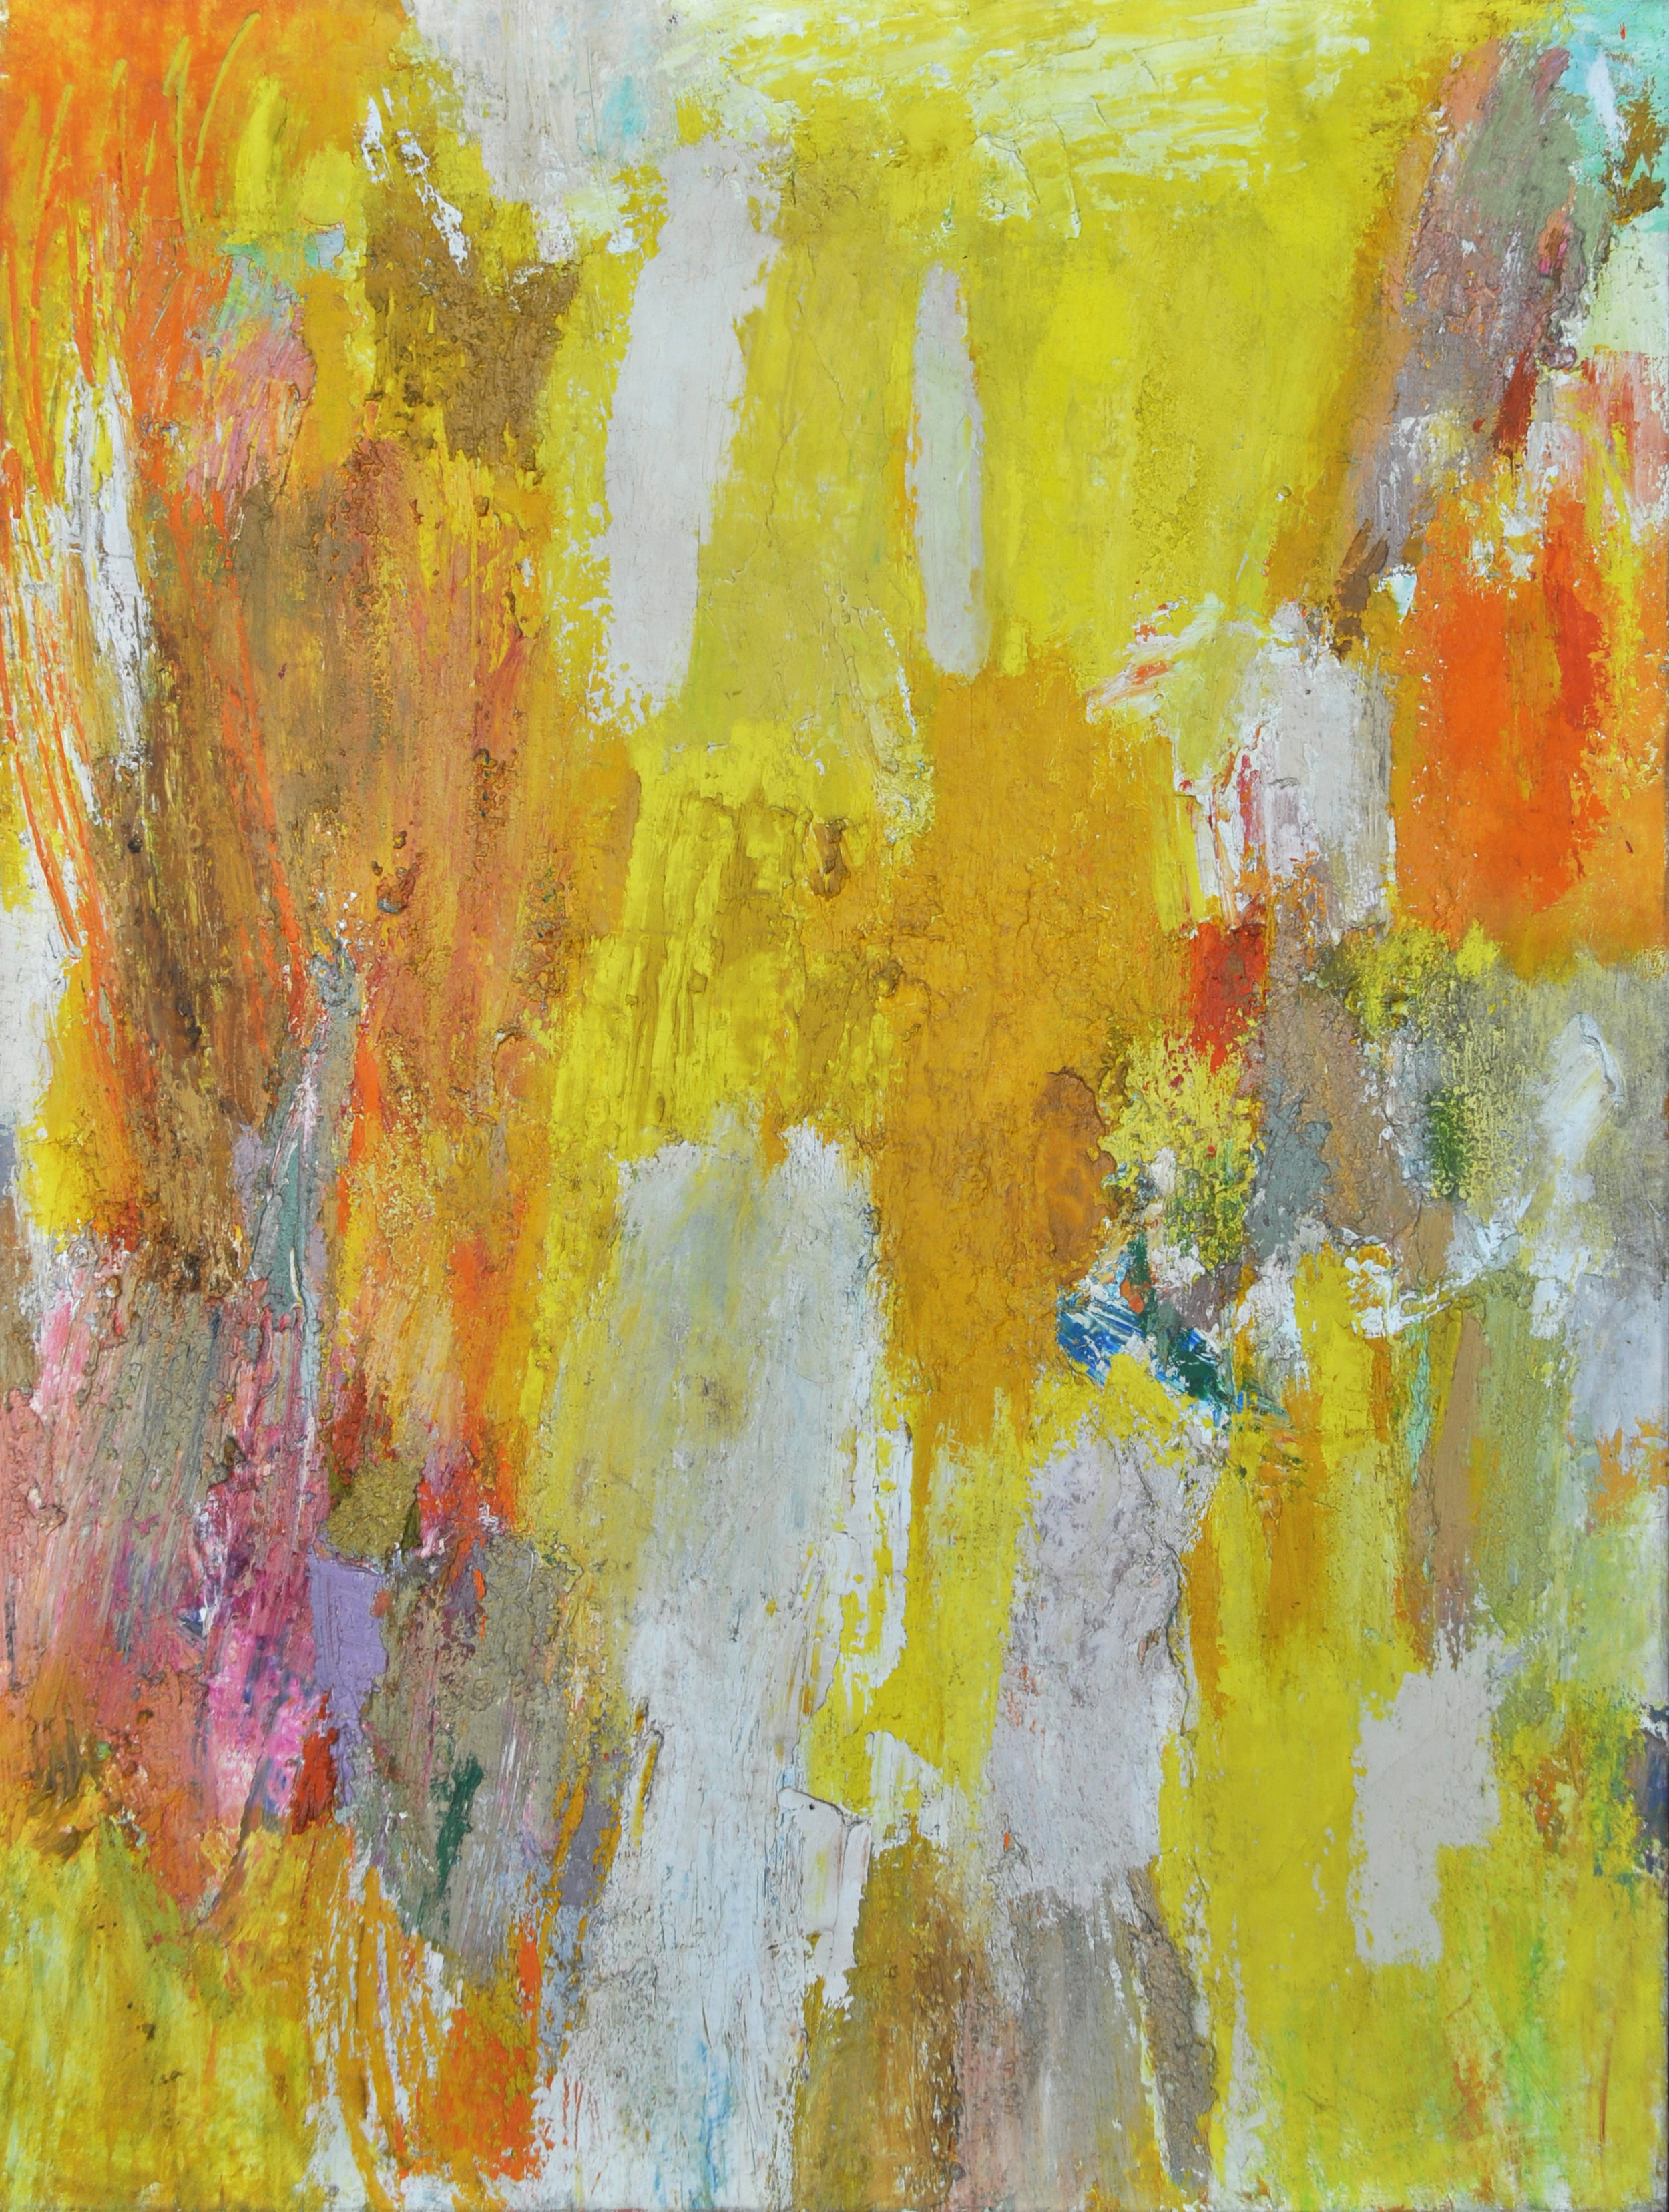 Untitled  ,   c. 1950s  , oil on canvas, 48 x 36 inches